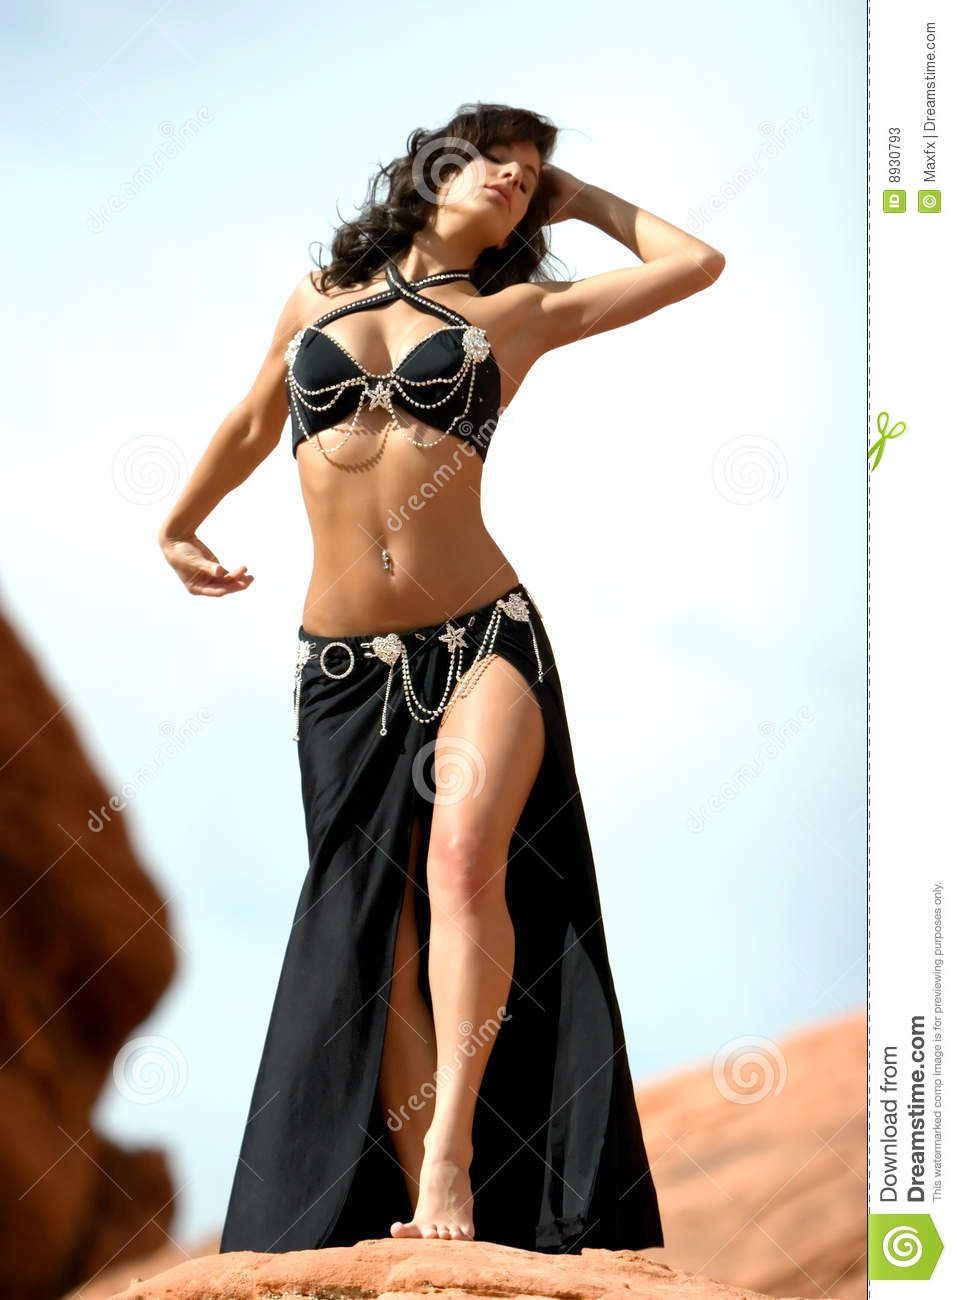 Inventor reccomend Belly dancing costume erotic